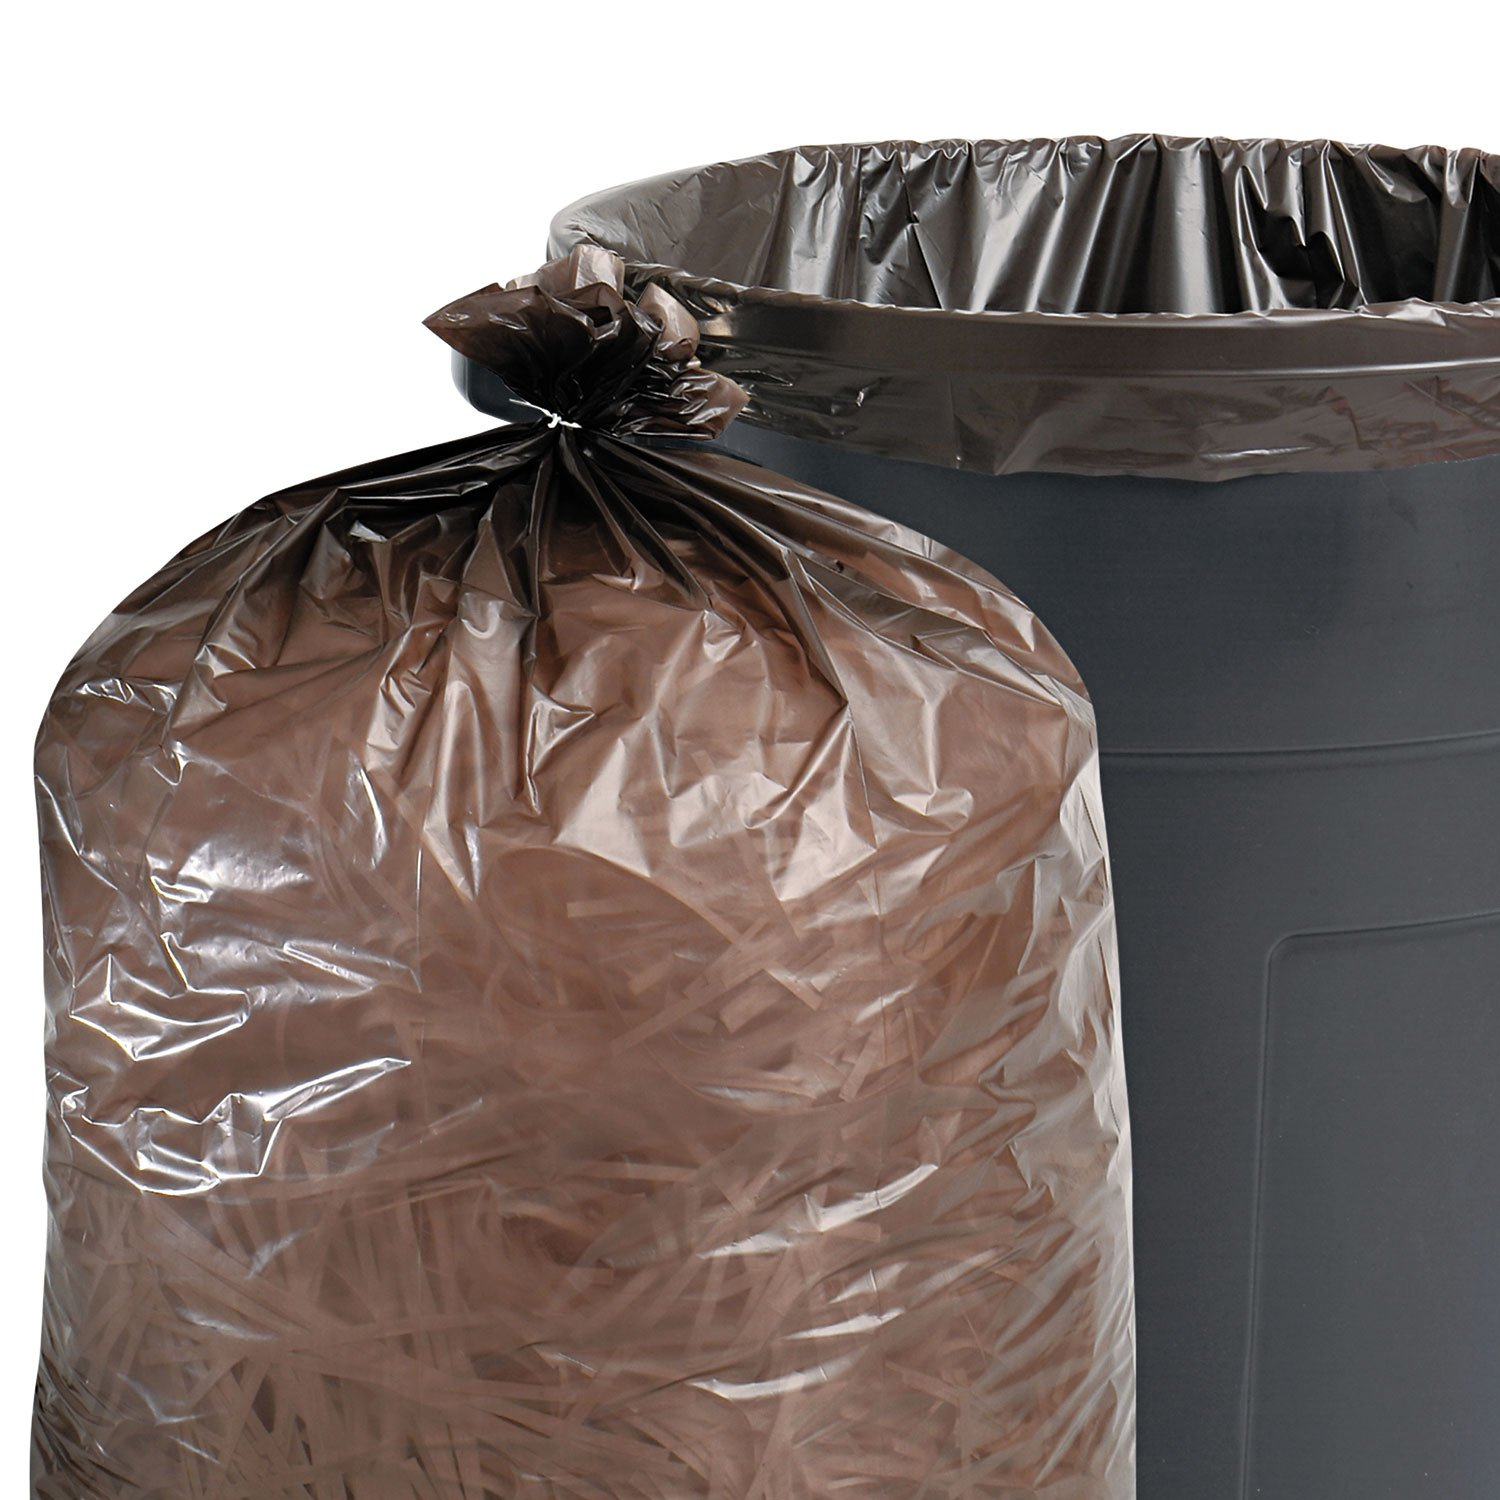 Stout by Envision T4349B15 100% Recycled Plastic Garbage Bags, 56gal, 1.5mil, 43 x 49, Brown/Black (Case of 100)